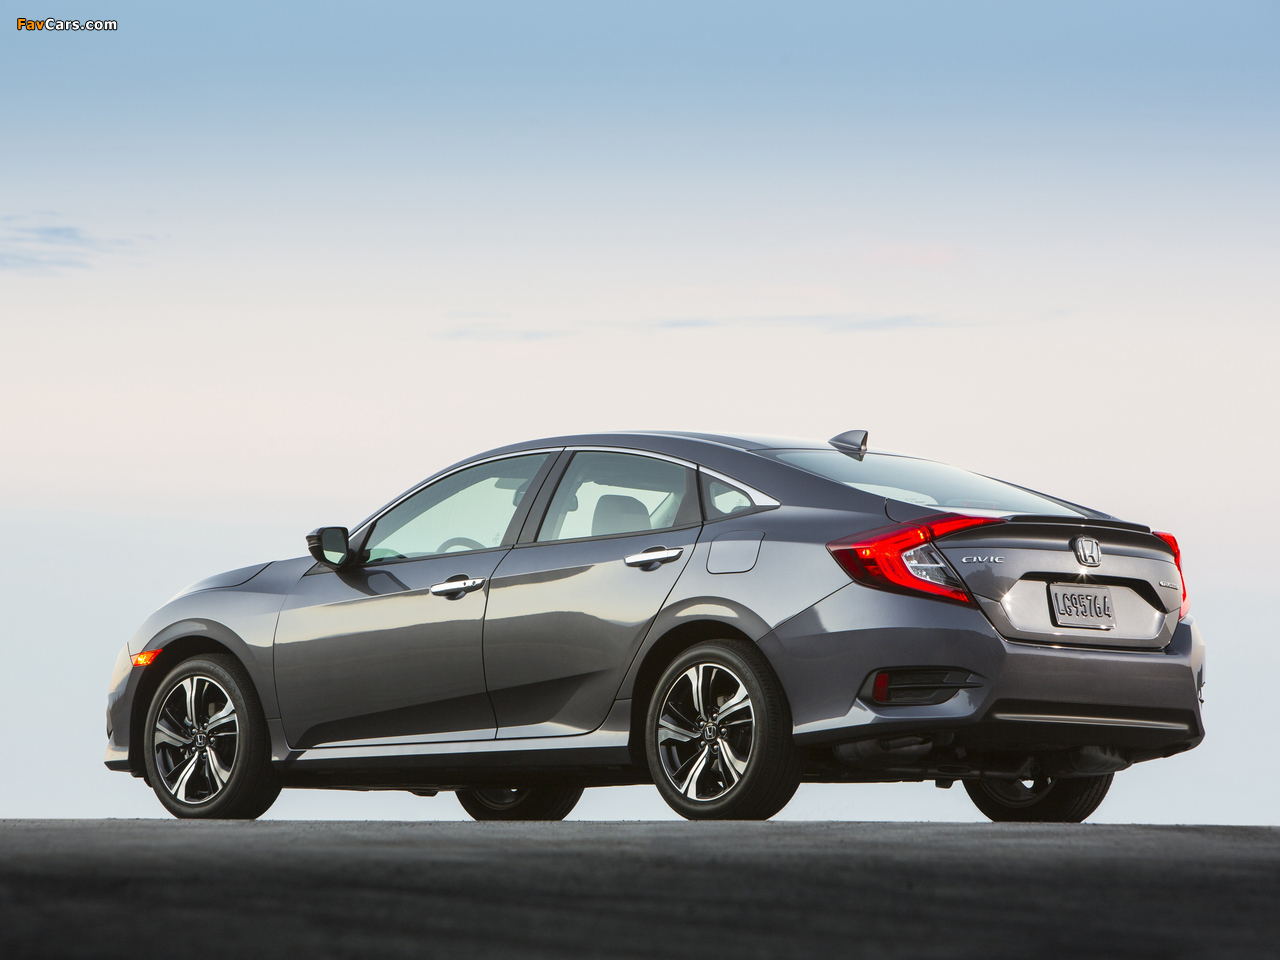 honda_civic_2015_wallpapers_2_1280x960